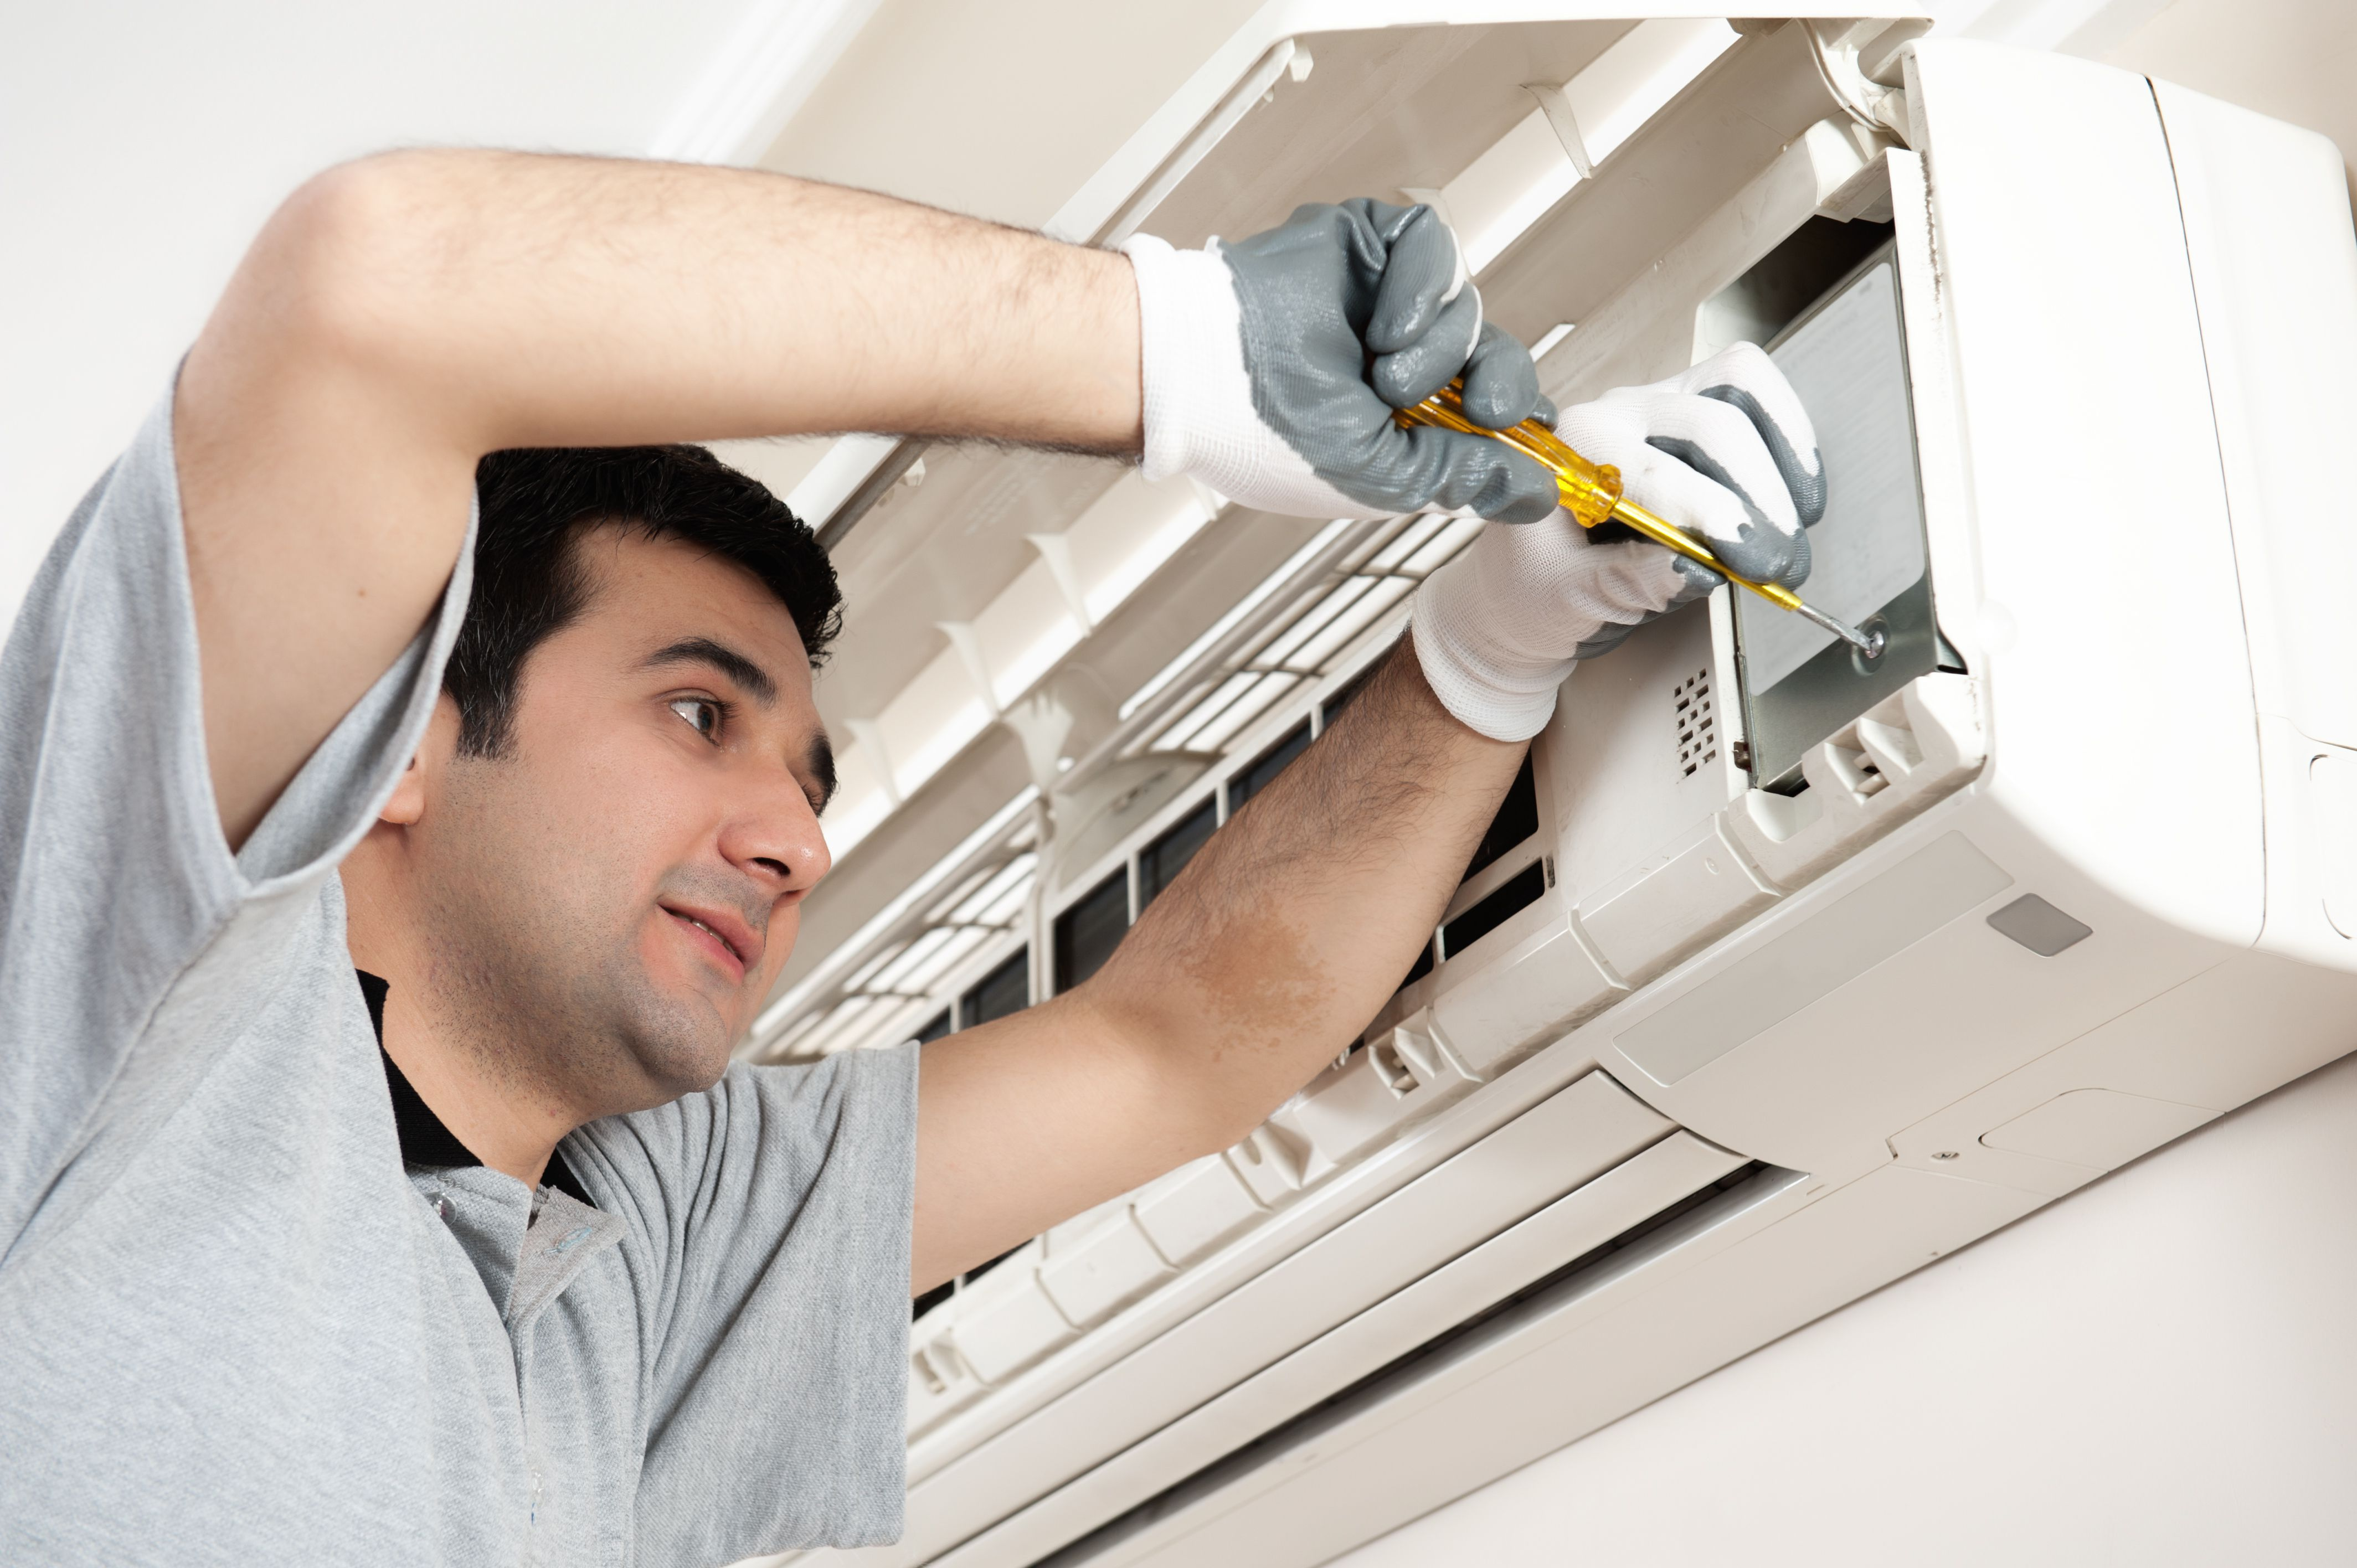 central air-conditioning system repair